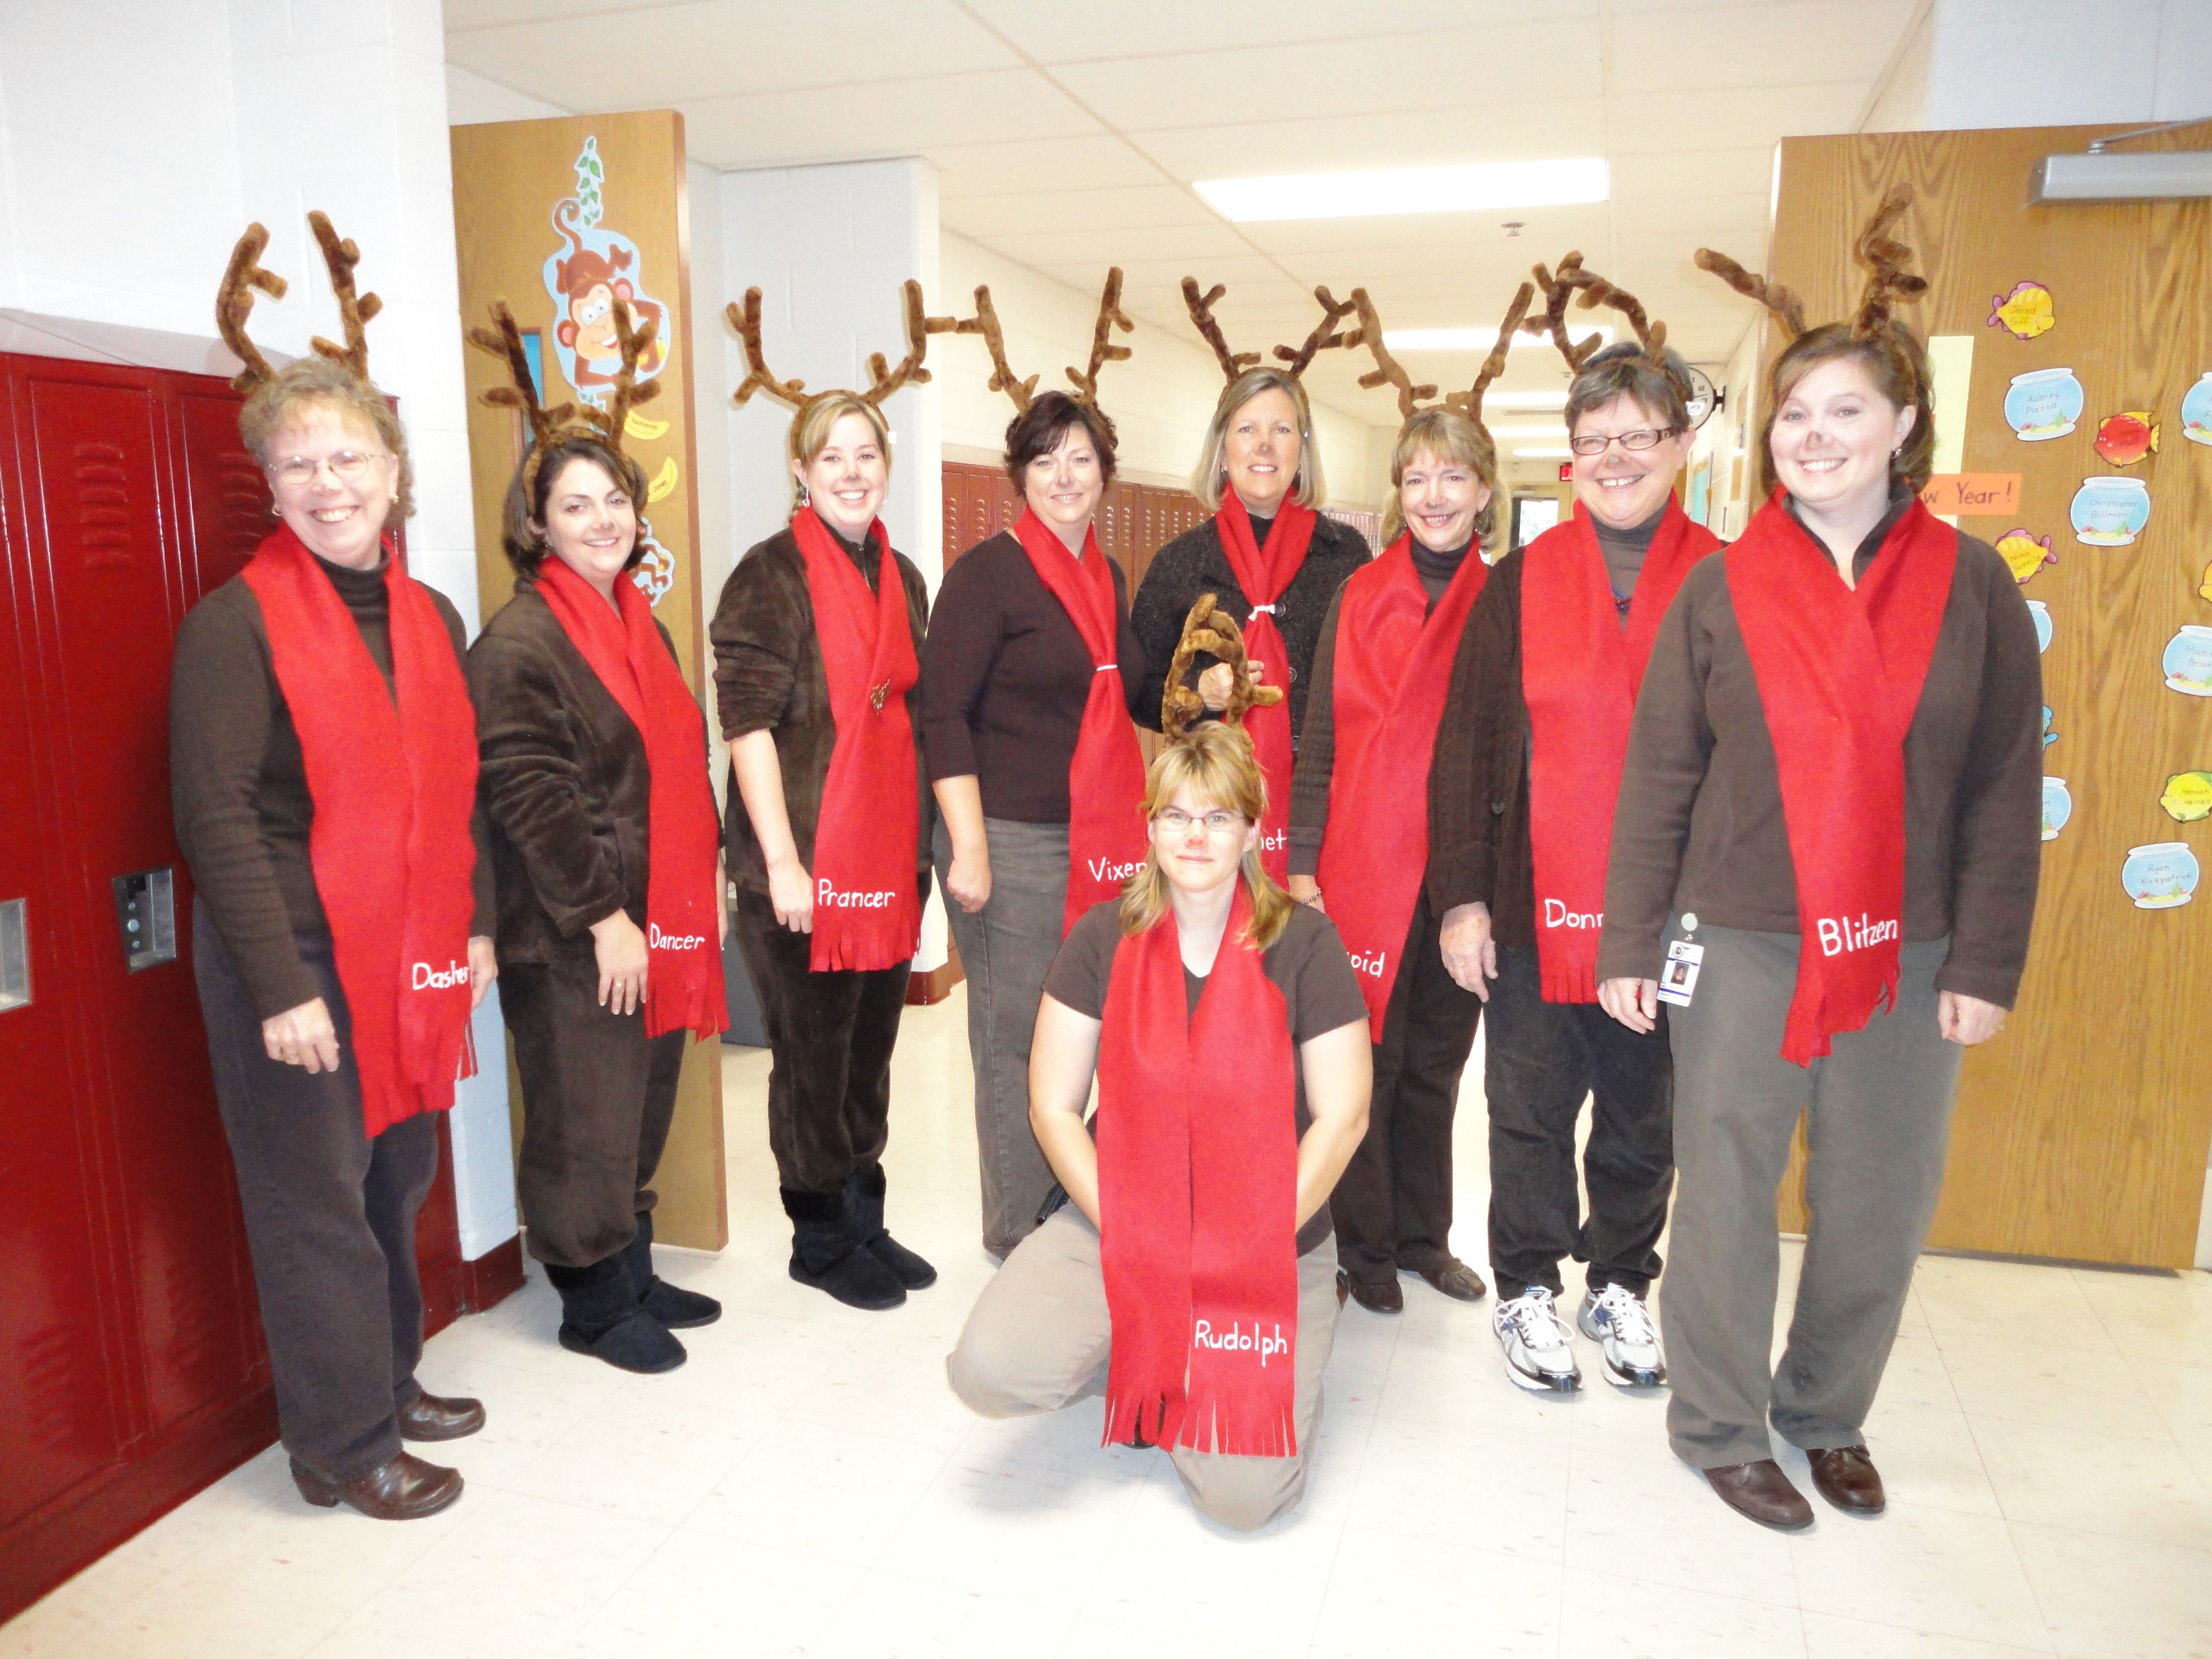 Costume Ideas For Christmas Party Part - 43: Easy Reindeer Costume